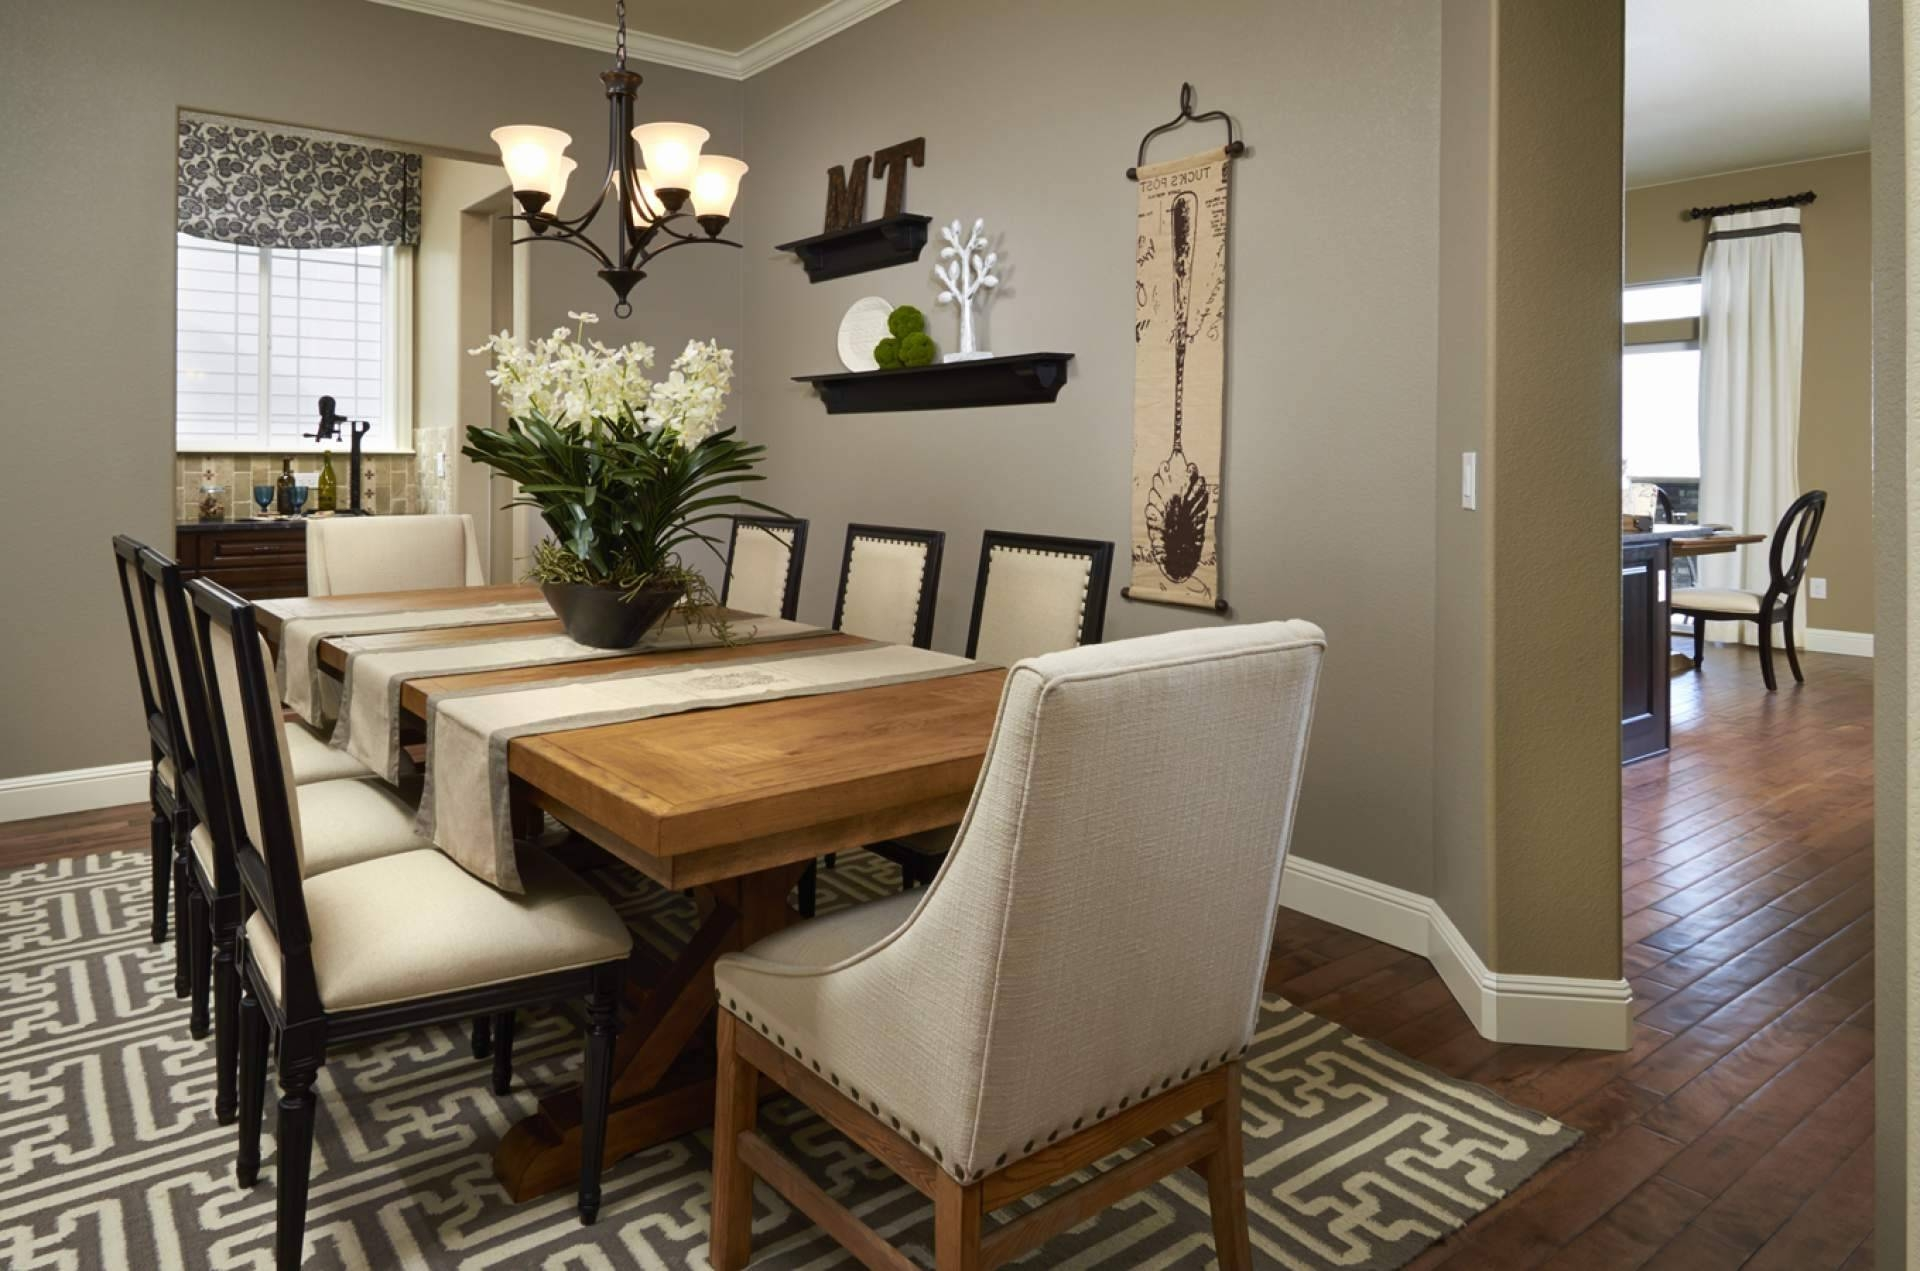 Modern Dining Rooms Ideas Lovely Modern Dining Room Wall Decor Intended For Most Recent Modern Wall Art For Dining Room (View 13 of 15)